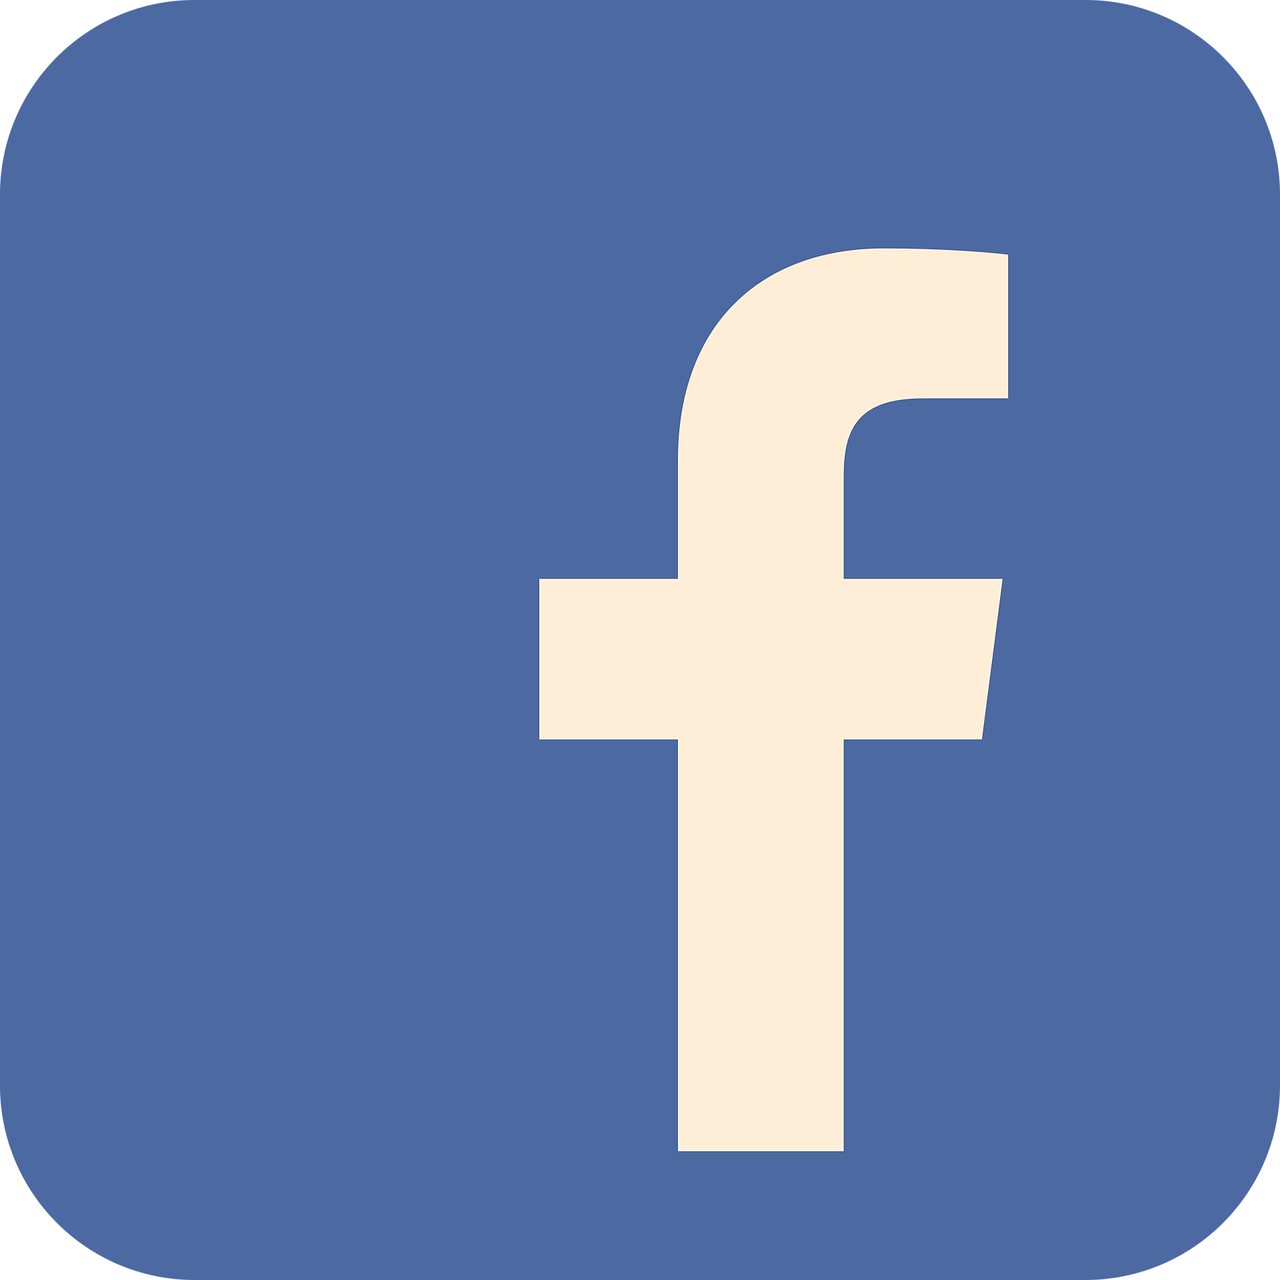 facebook, flat, flat icon